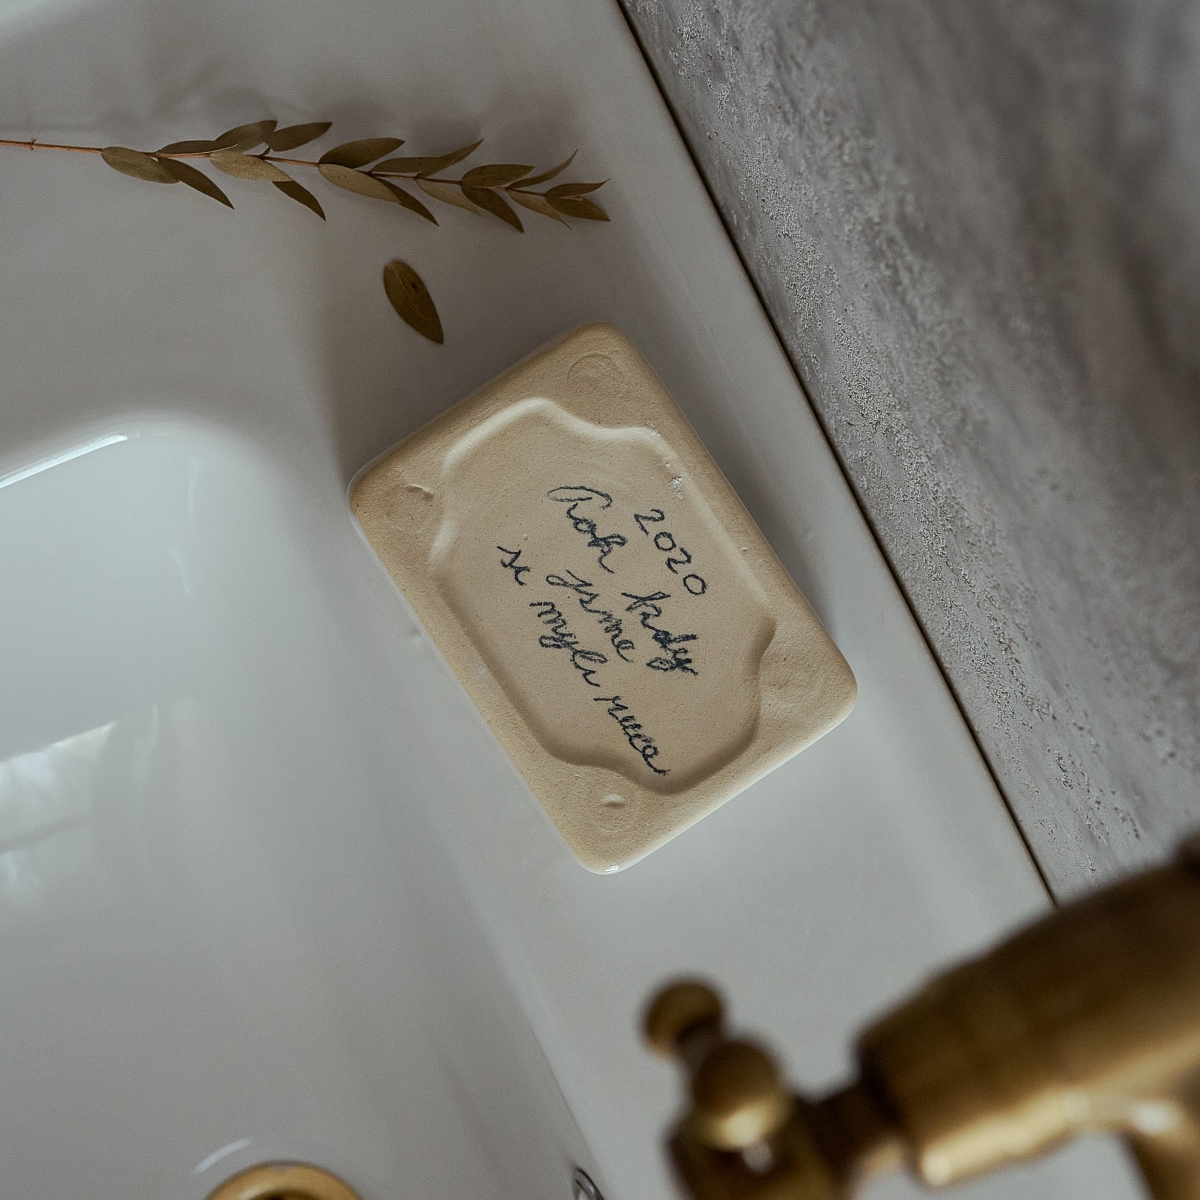 White porcelain soap dish by Milan Pekar with a soap